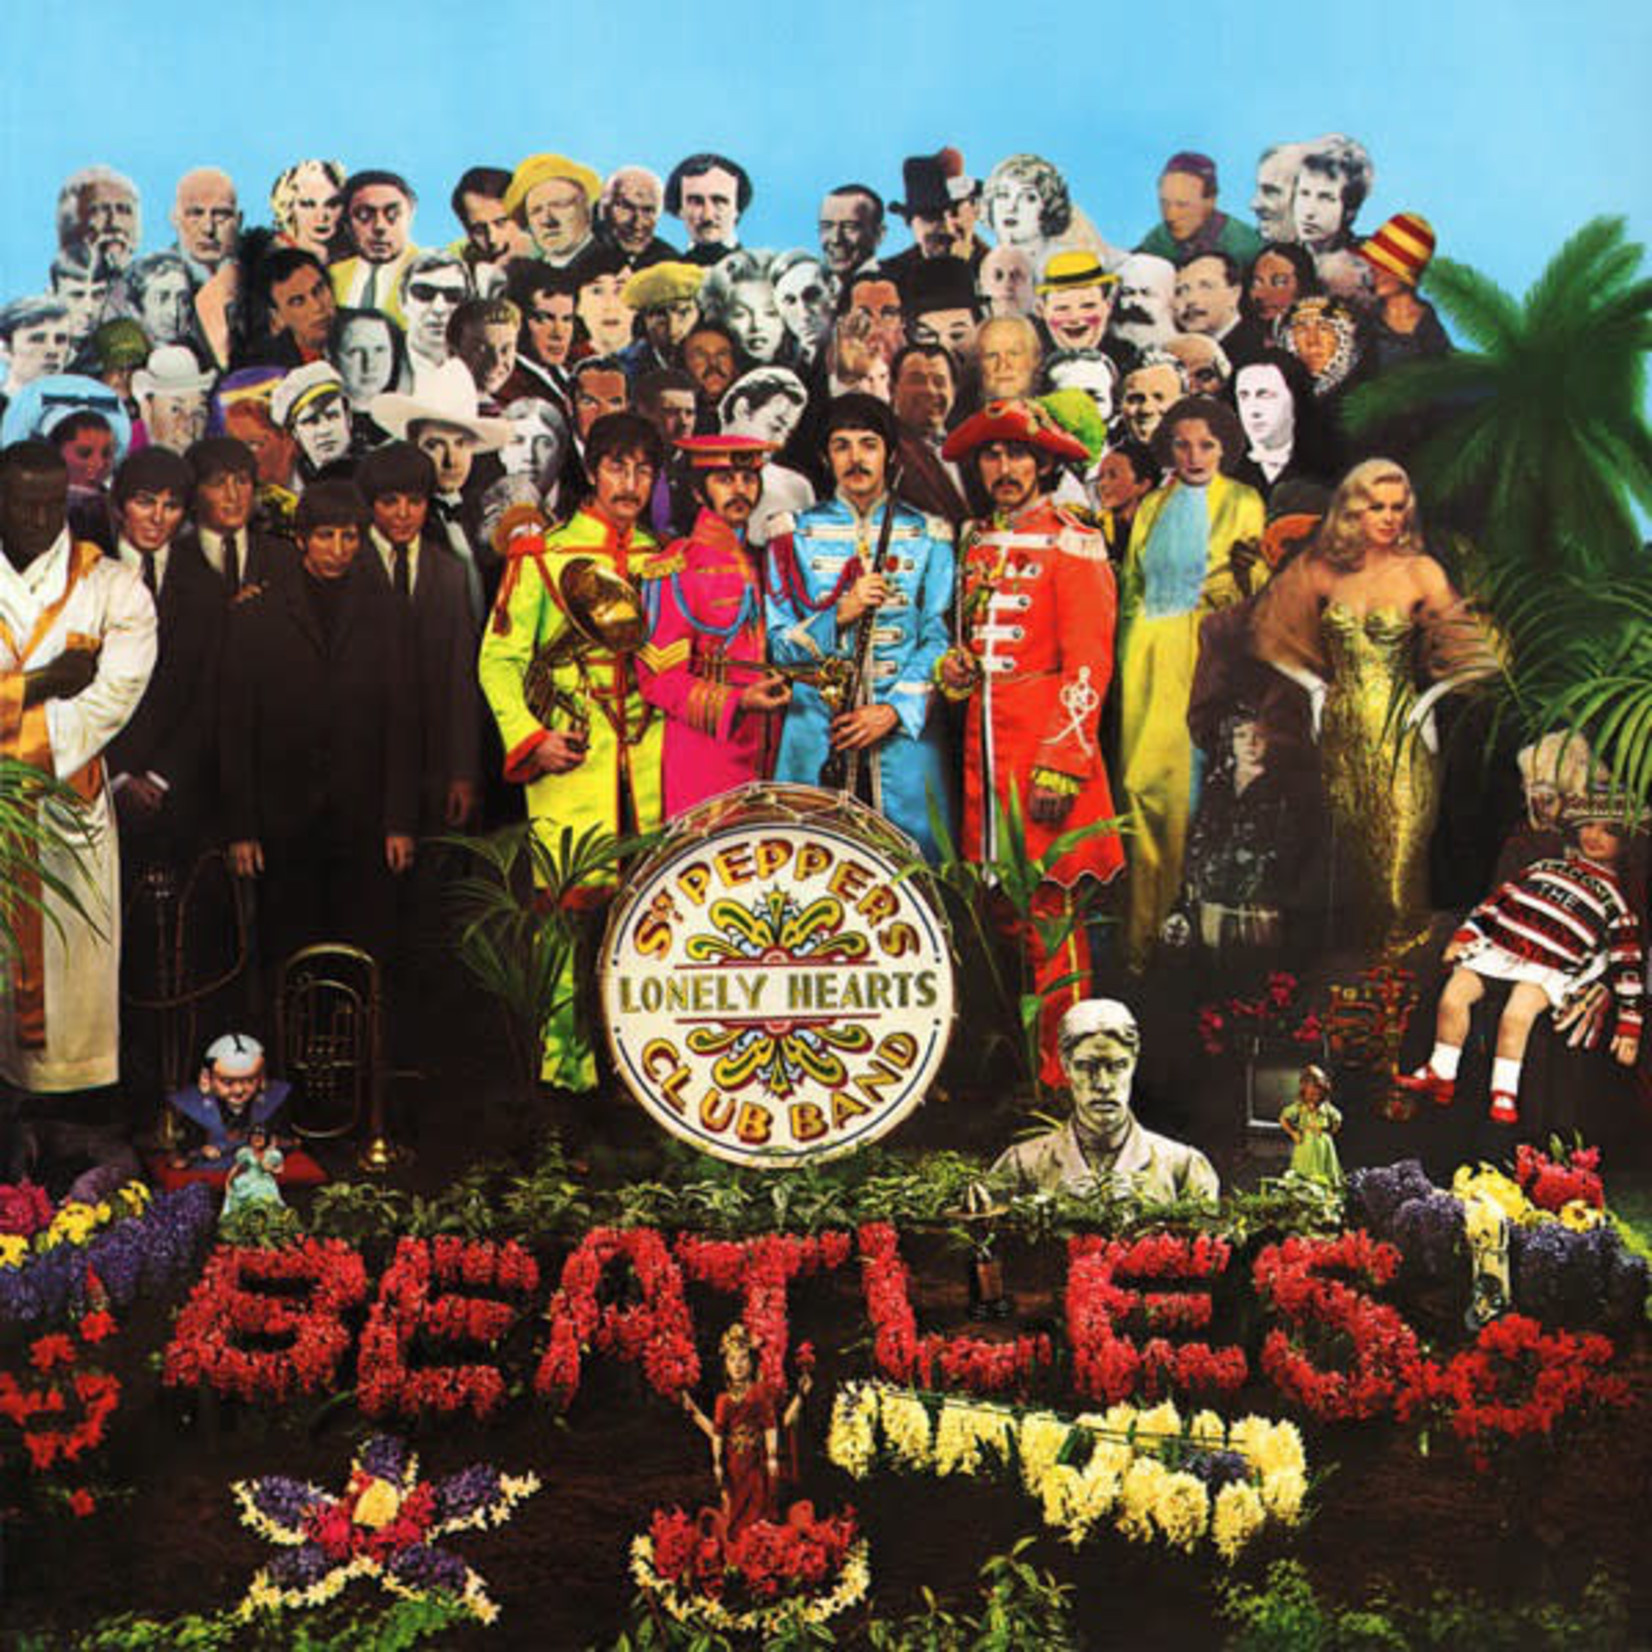 [Vintage] Beatles: Sgt. Pepper's Lonely Hearts Club Band (reissue, no inserts)